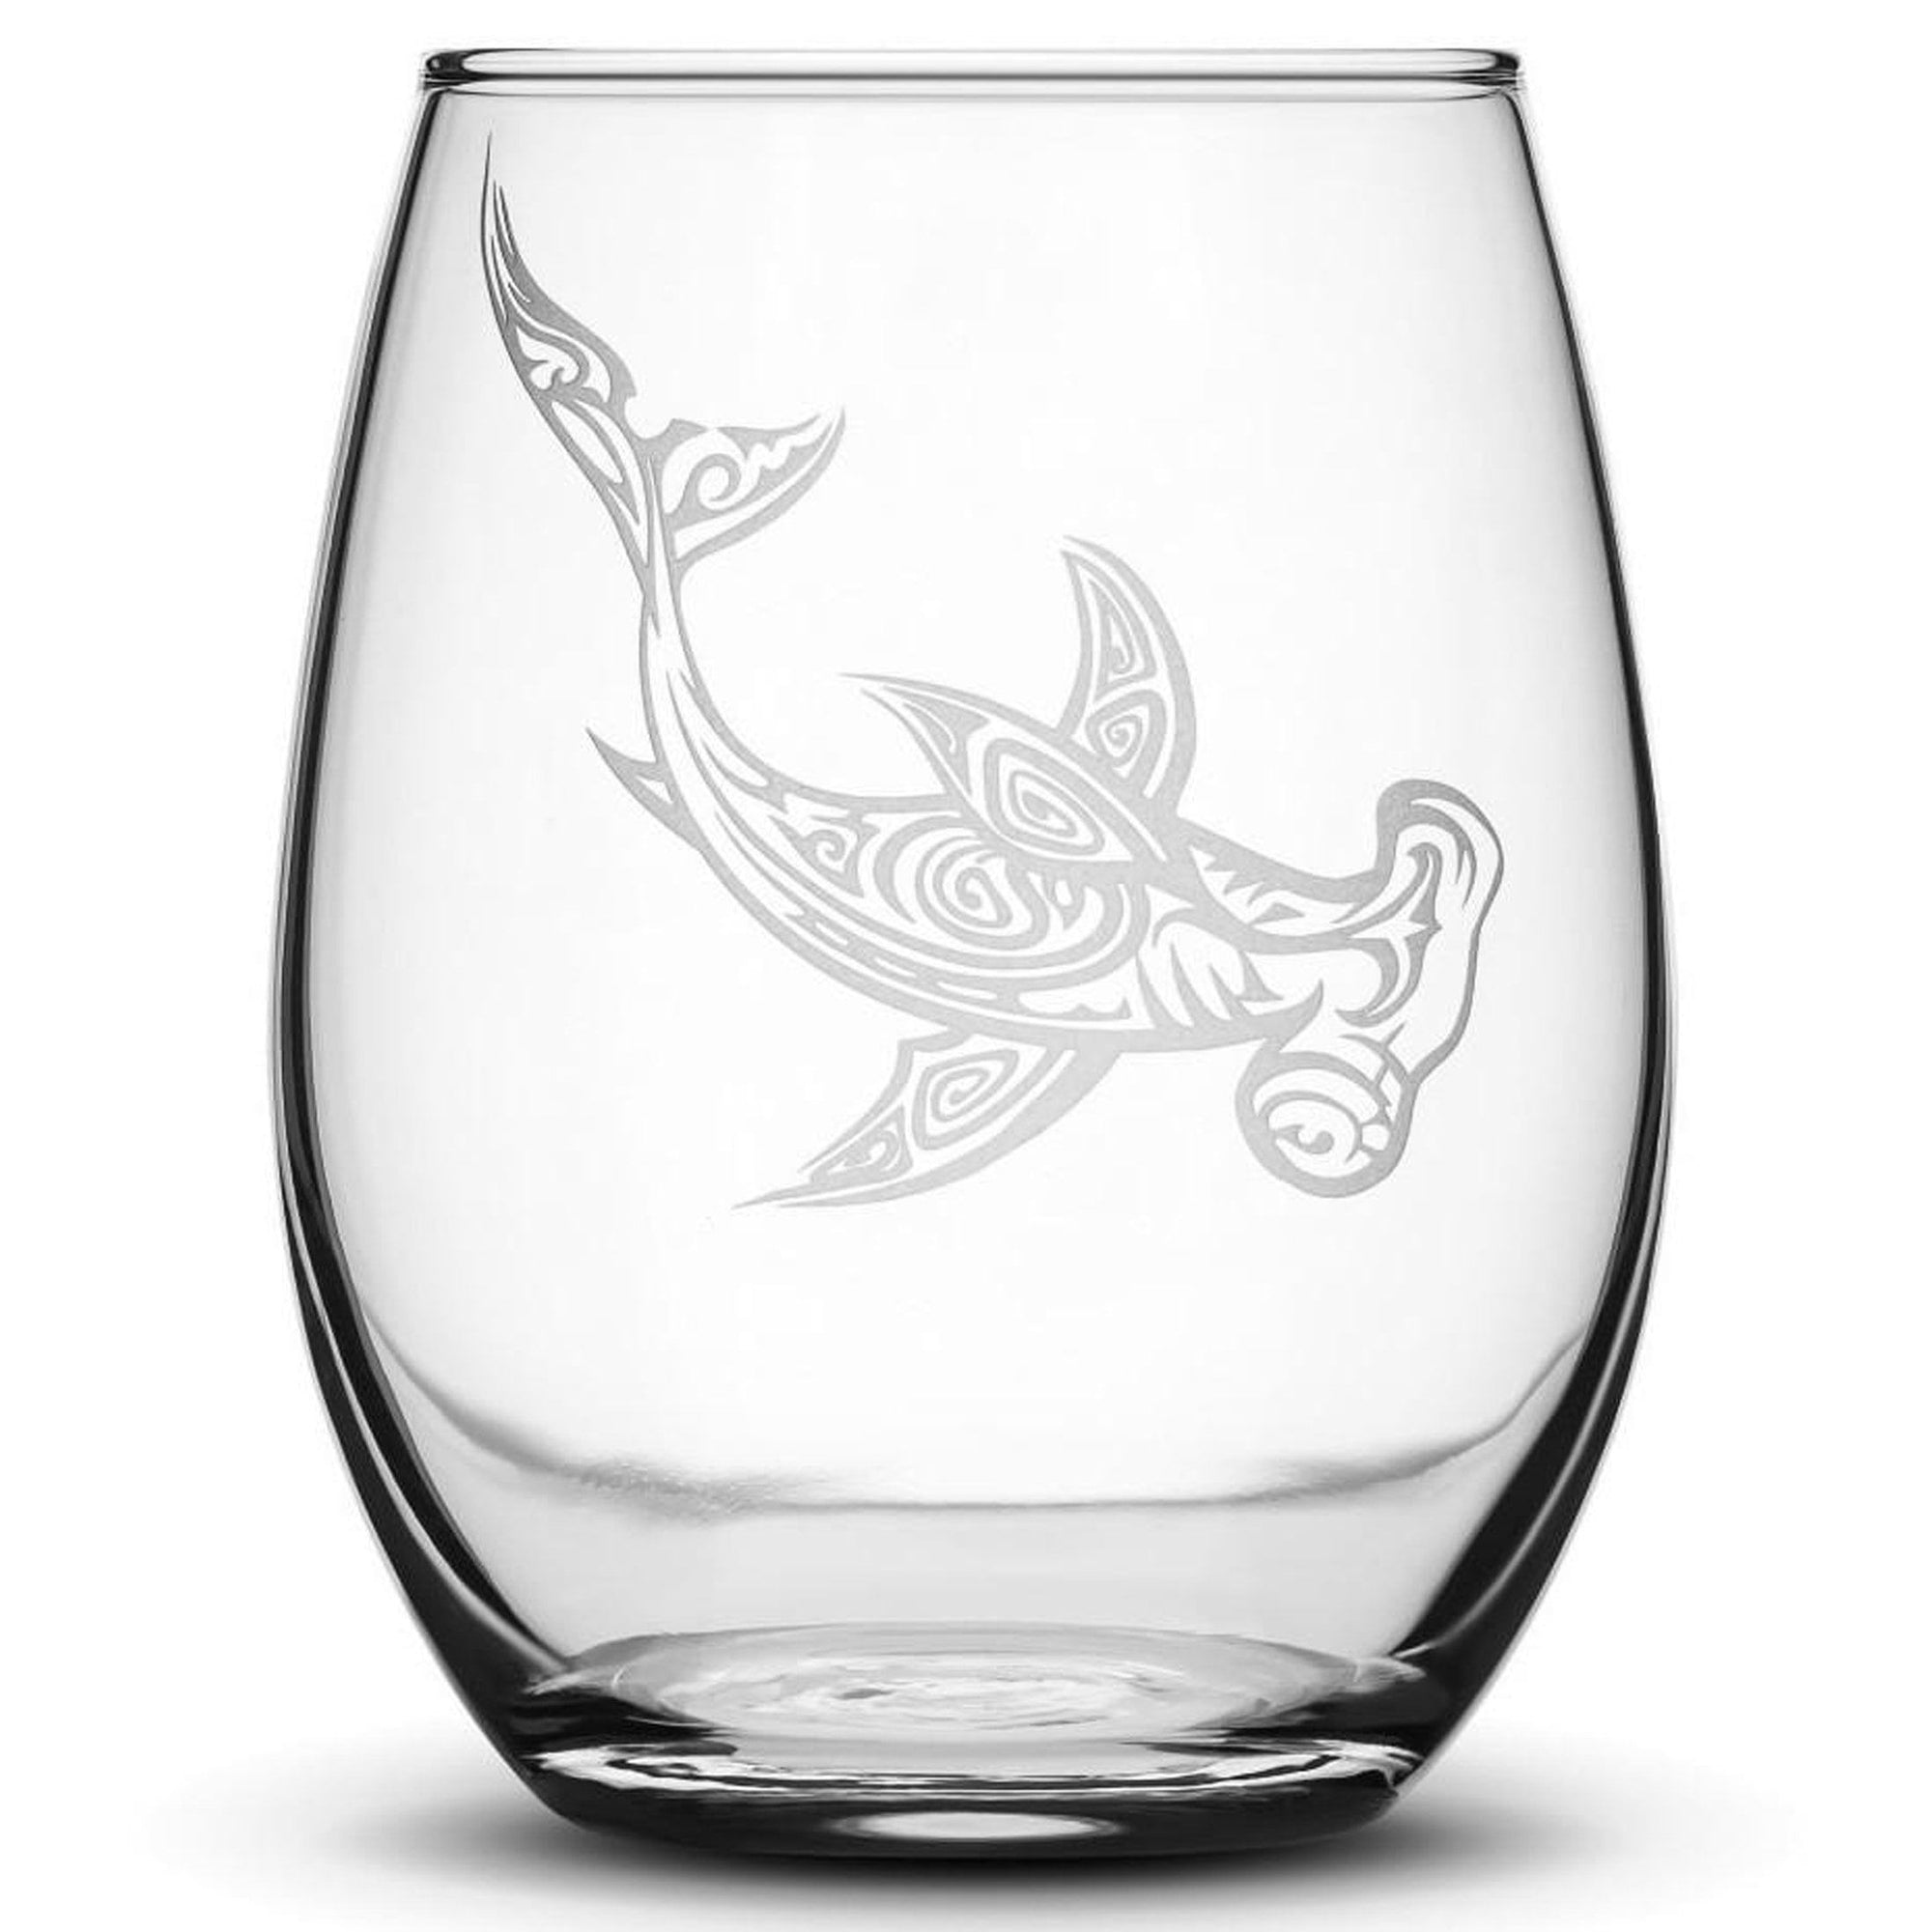 Premium Wine Glass, Hammerhead Shark Design, 16oz Integrity Bottles